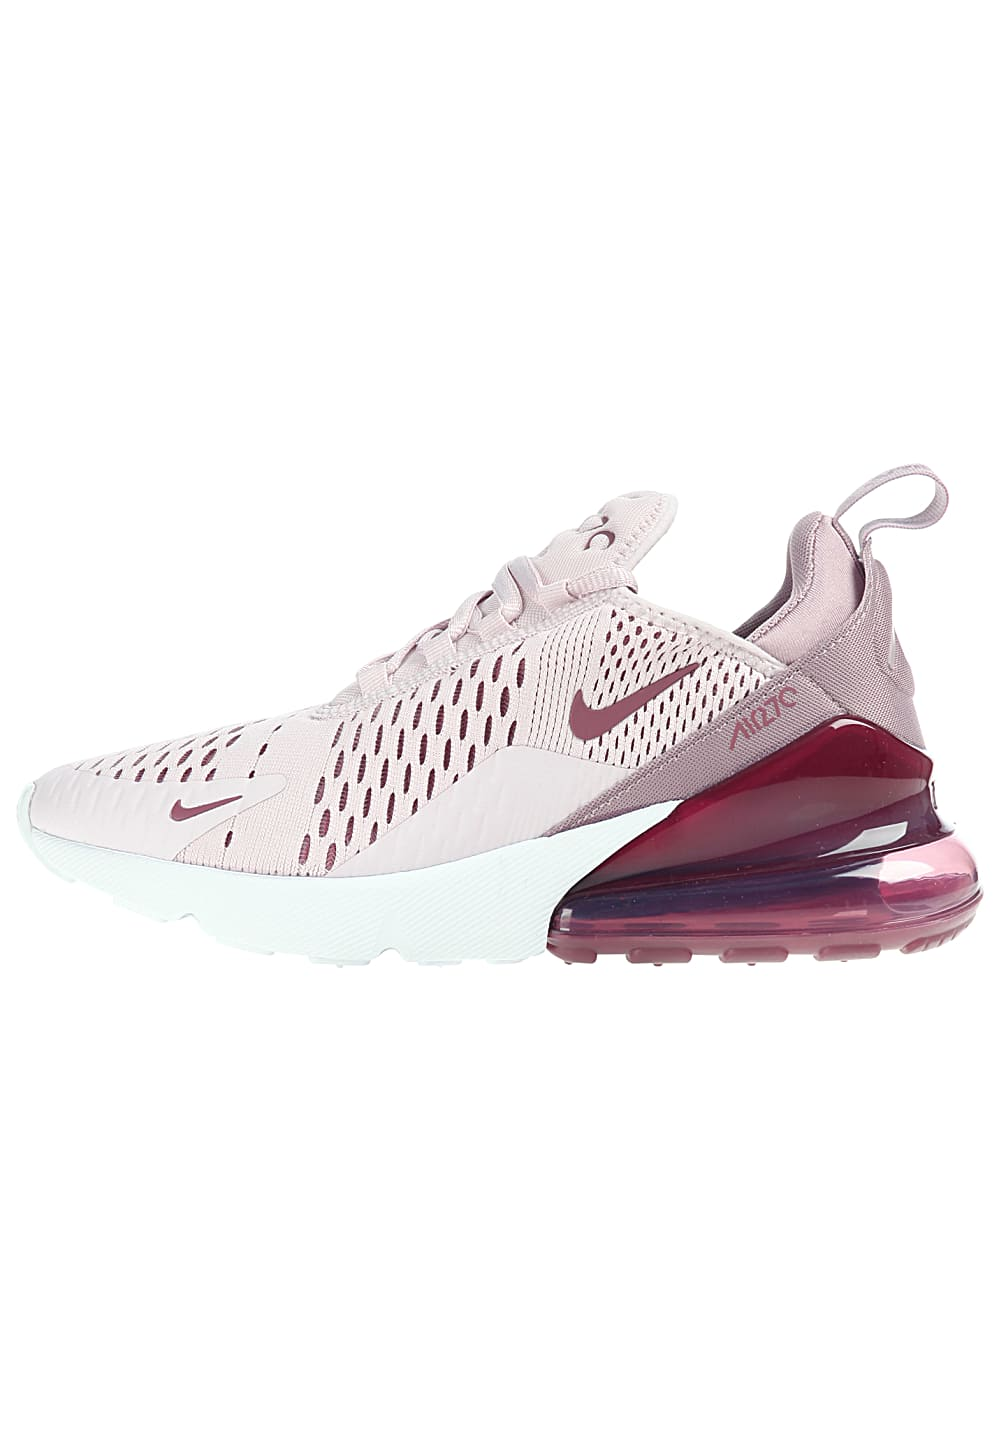 NIKE SPORTSWEAR Air Max 270 Sneakers for Women Pink